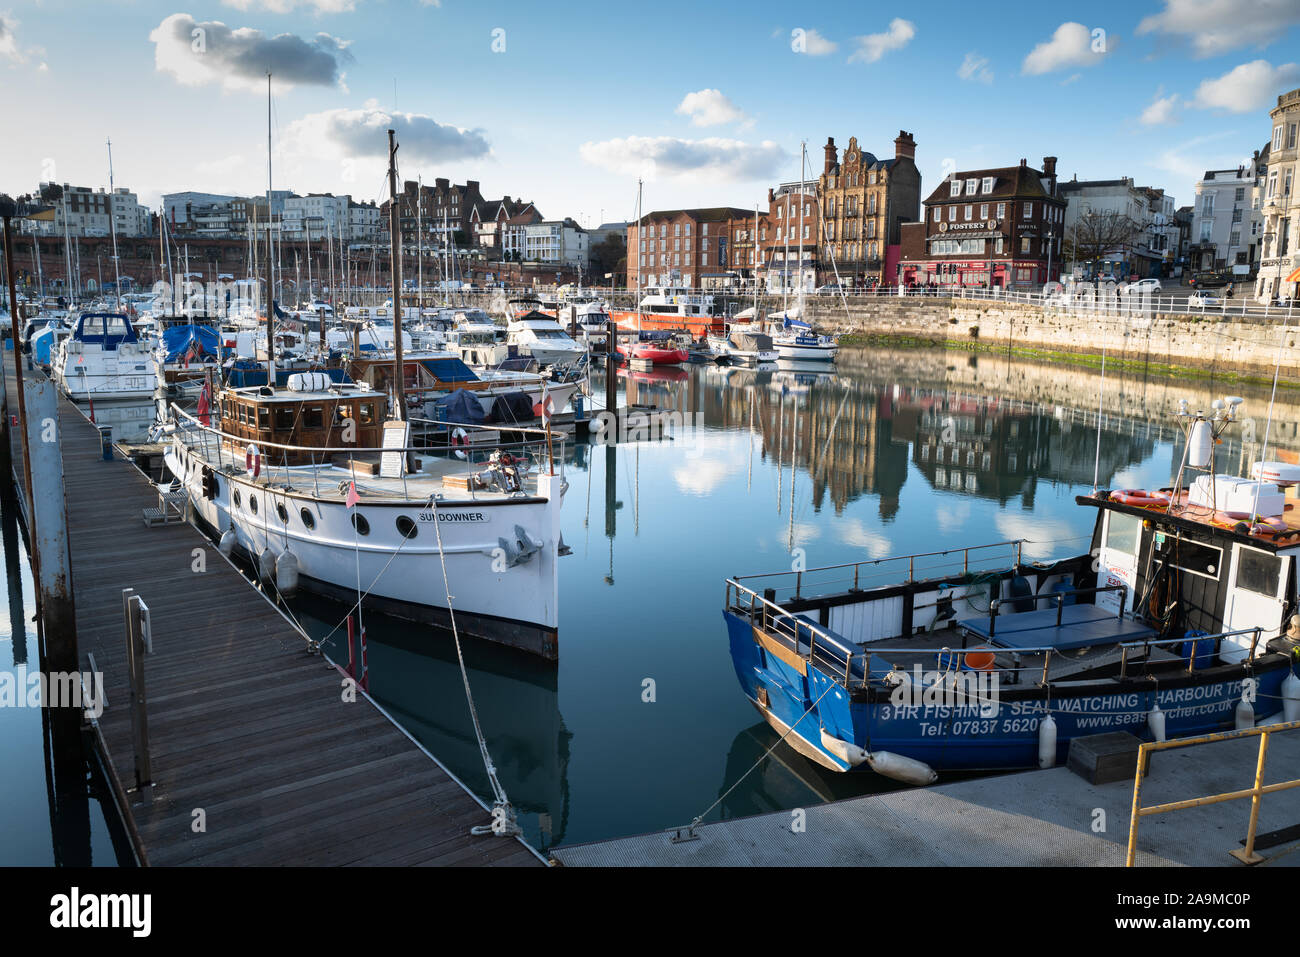 """Ramsgate, England - Nov 10 'Sundowner' in Ramsgate Royal Harbour . This boat participated in the Dunkirk evacuation as one of the """"little ships"""". Stock Photo"""